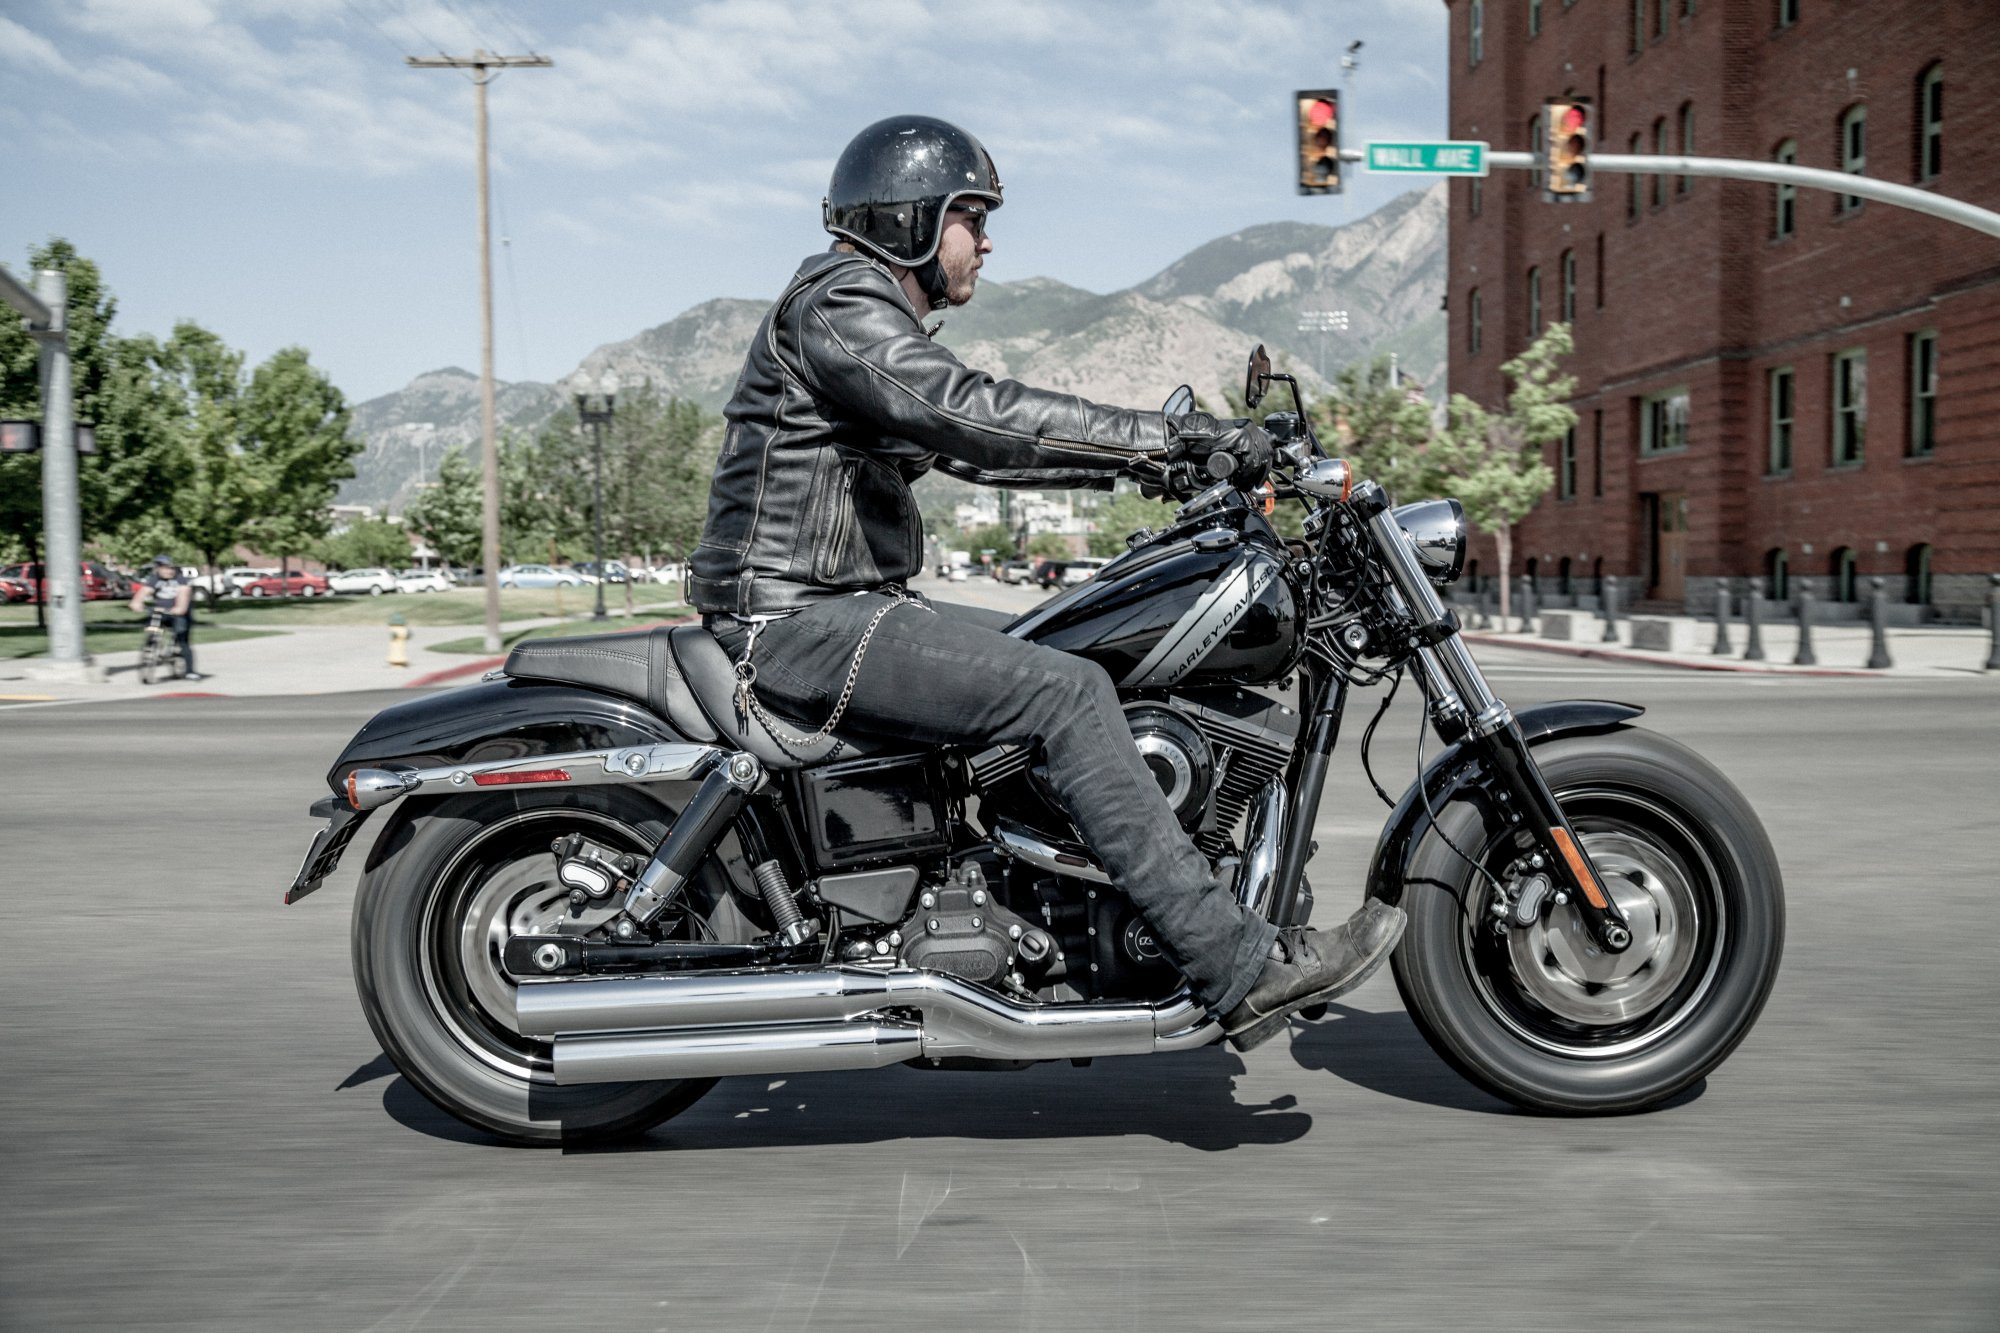 Harley Davidson Softail Fatboy Lo   Tall Guy